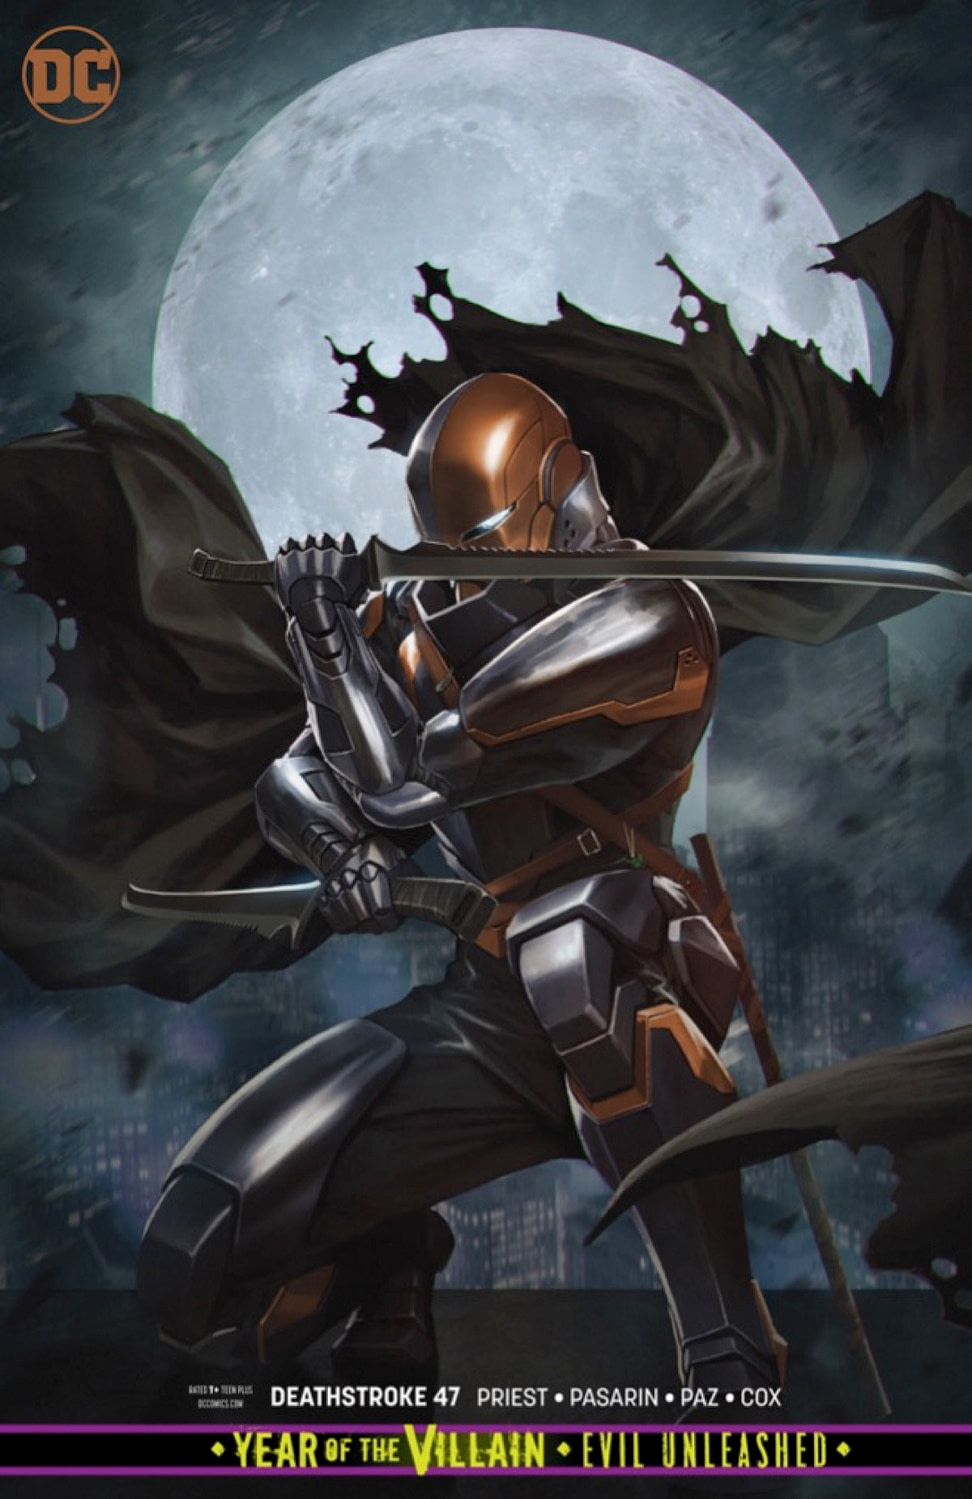 EXCLUSIVE Deathstroke #47 Preview